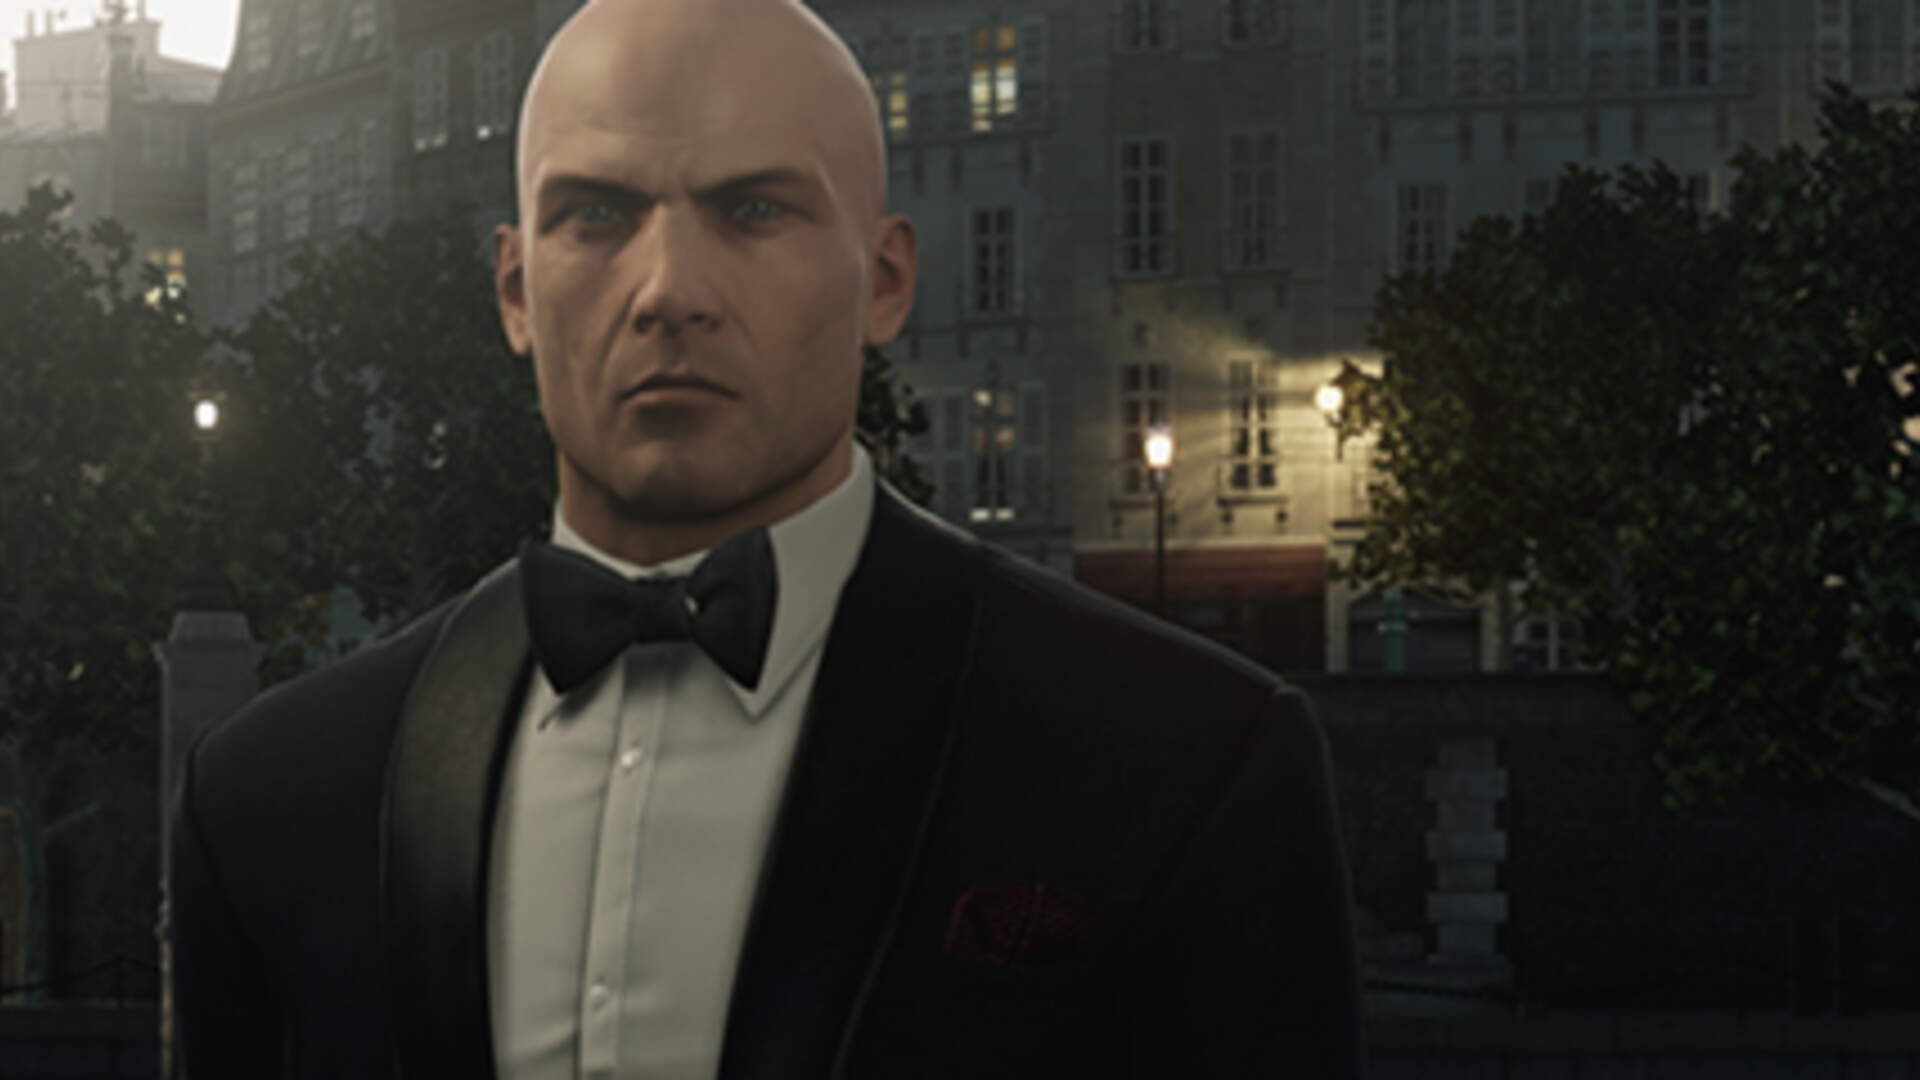 There's a New Hitman TV Show Coming to Hulu From the Creator of John Wick